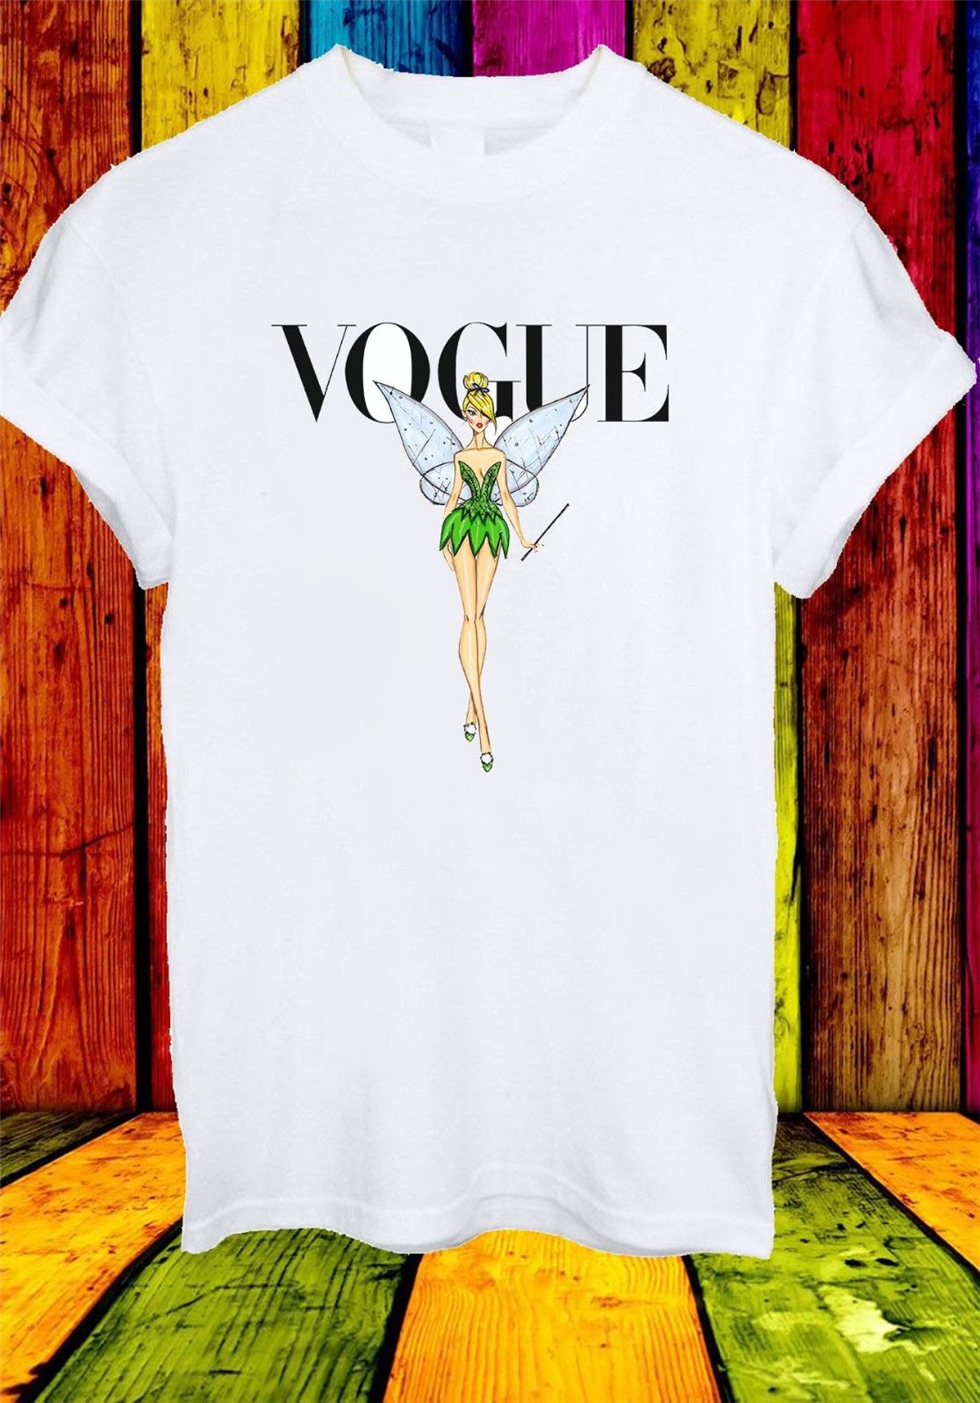 Vogue Cover Fairy Tinker Bell Peter Pan Men Women Unisex T-Shirt 2743 Streetwear Tee Shirt